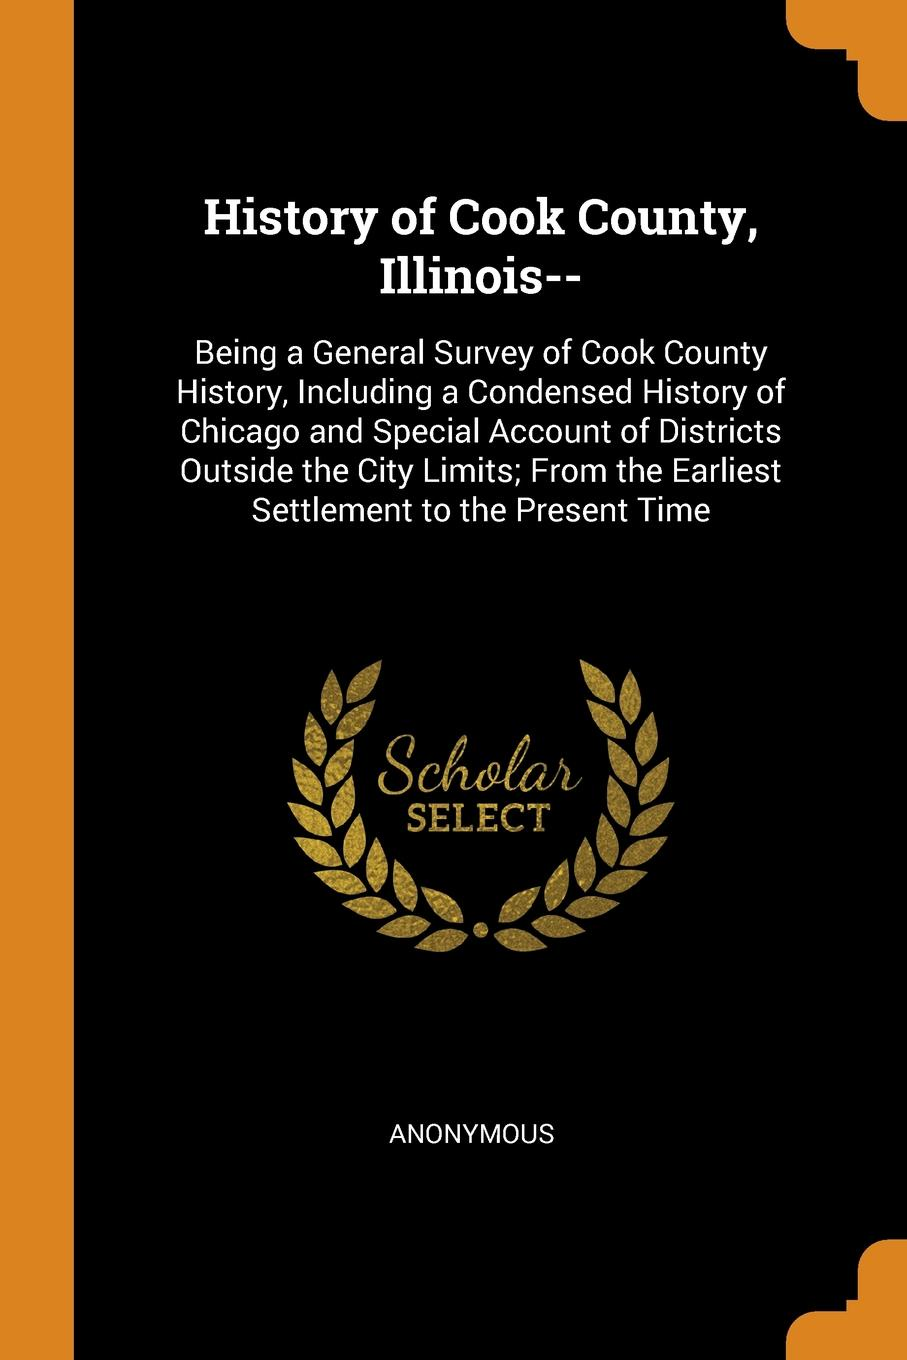 M. l'abbé Trochon History of Cook County, Illinois--. Being a General Survey of Cook County History, Including a Condensed History of Chicago and Special Account of Districts Outside the City Limits; From the Earliest Settlement to the Present Time charles richard tuttle the centennial northwest an illustrated history of the northwest being a full and complete civil political and military history of this great section of the united states from its earliest settlement to the present time